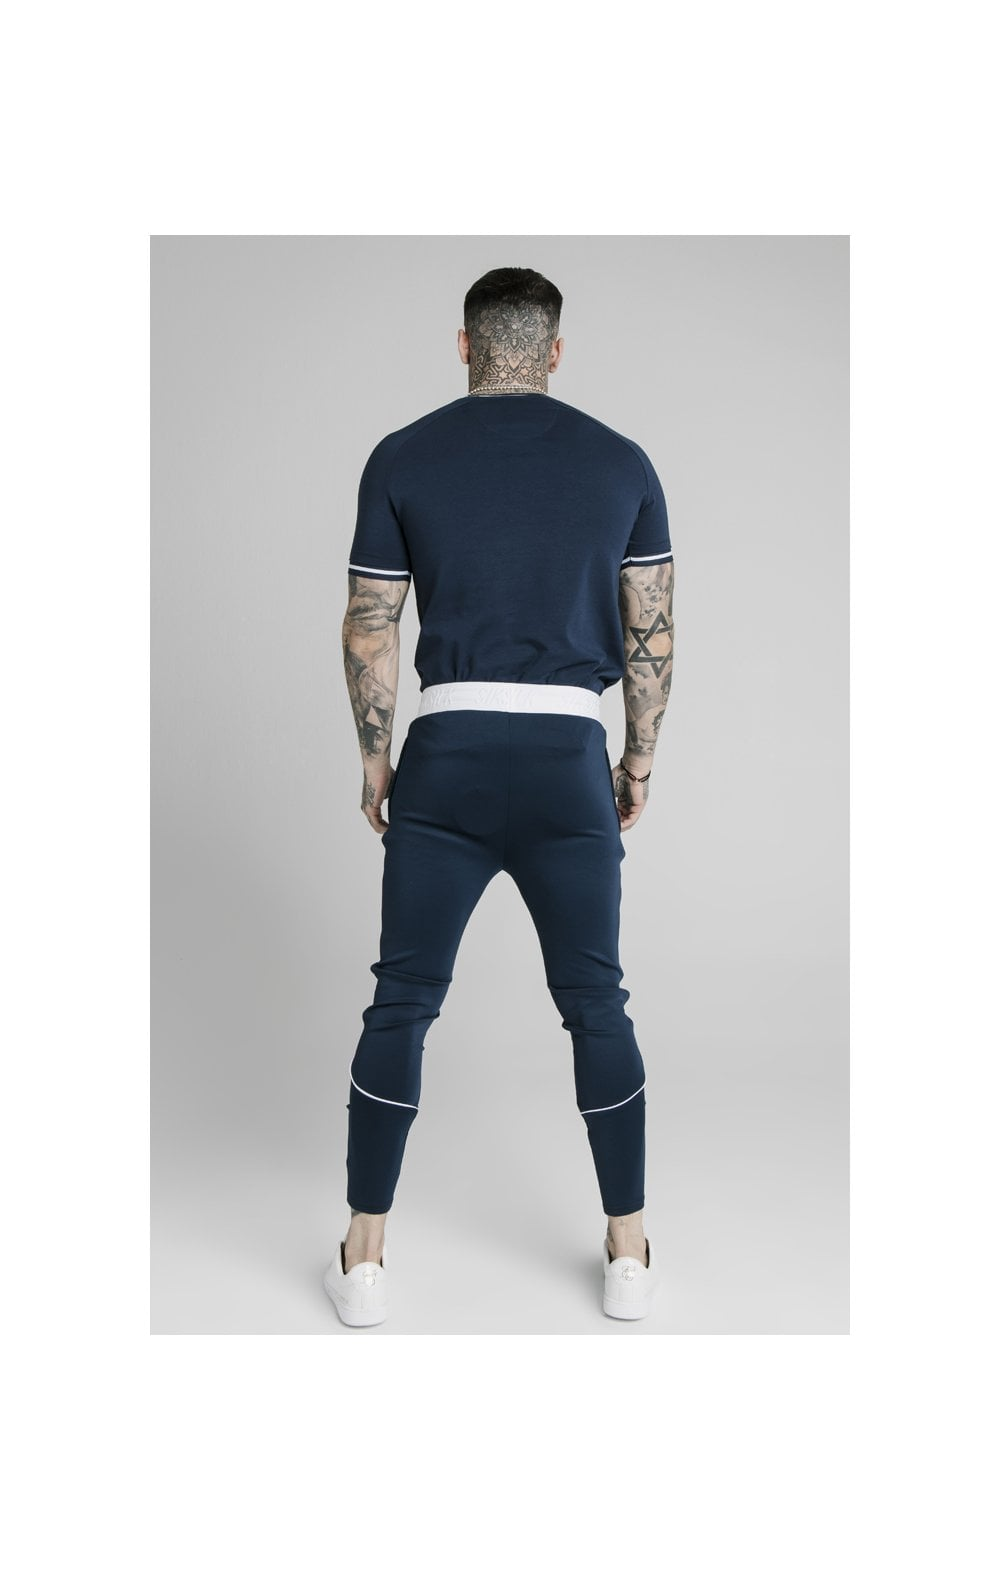 Load image into Gallery viewer, SikSilk Athlete Prestige Fade Track Pants - Navy (6)